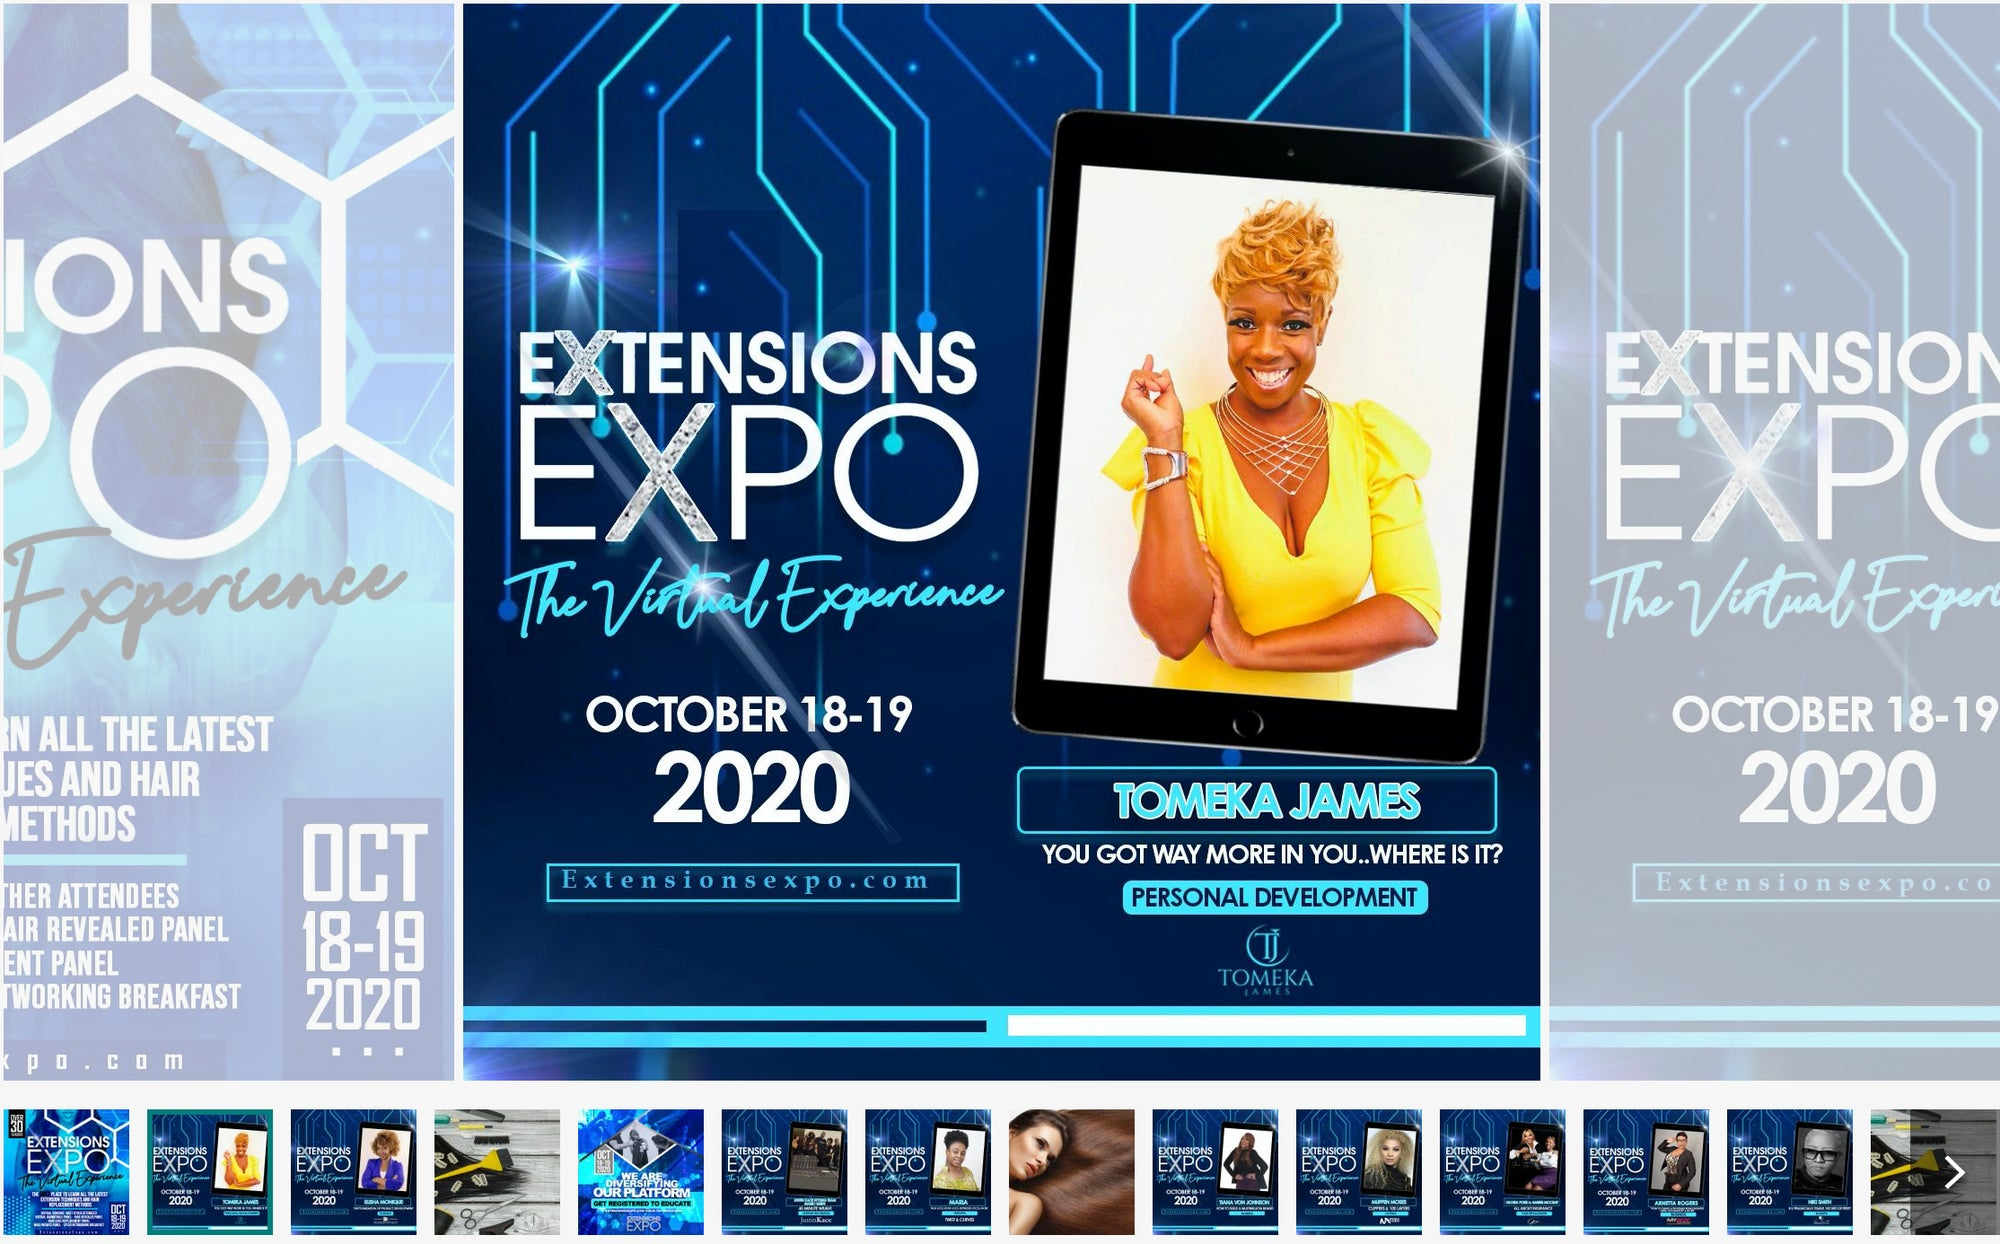 Extensions Expo